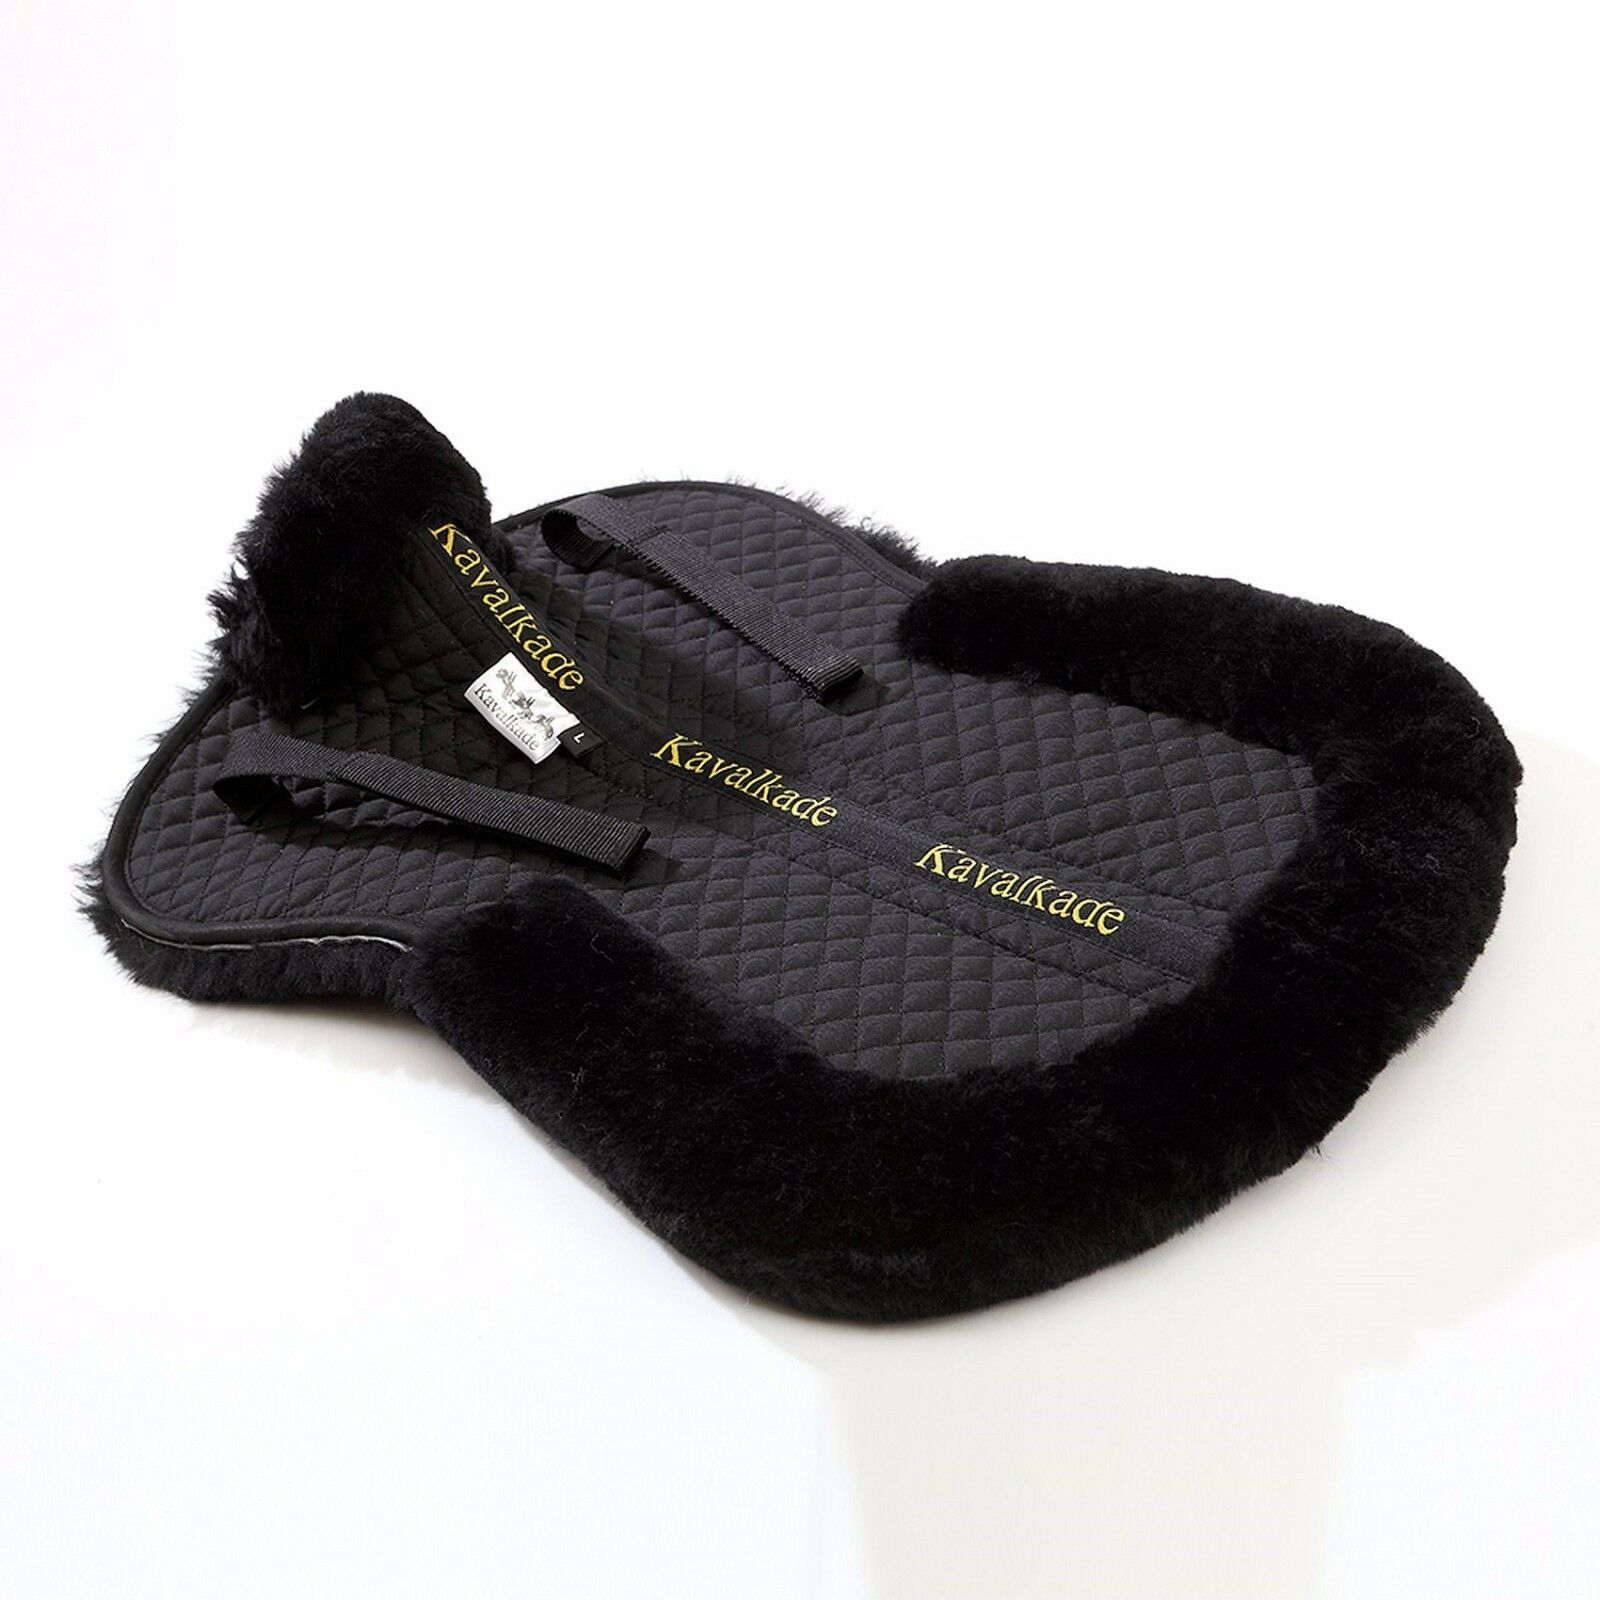 Kavalkade Medical Lambskin Saddle Correction  Half Pad Rolled Edges Front & Rear  official quality